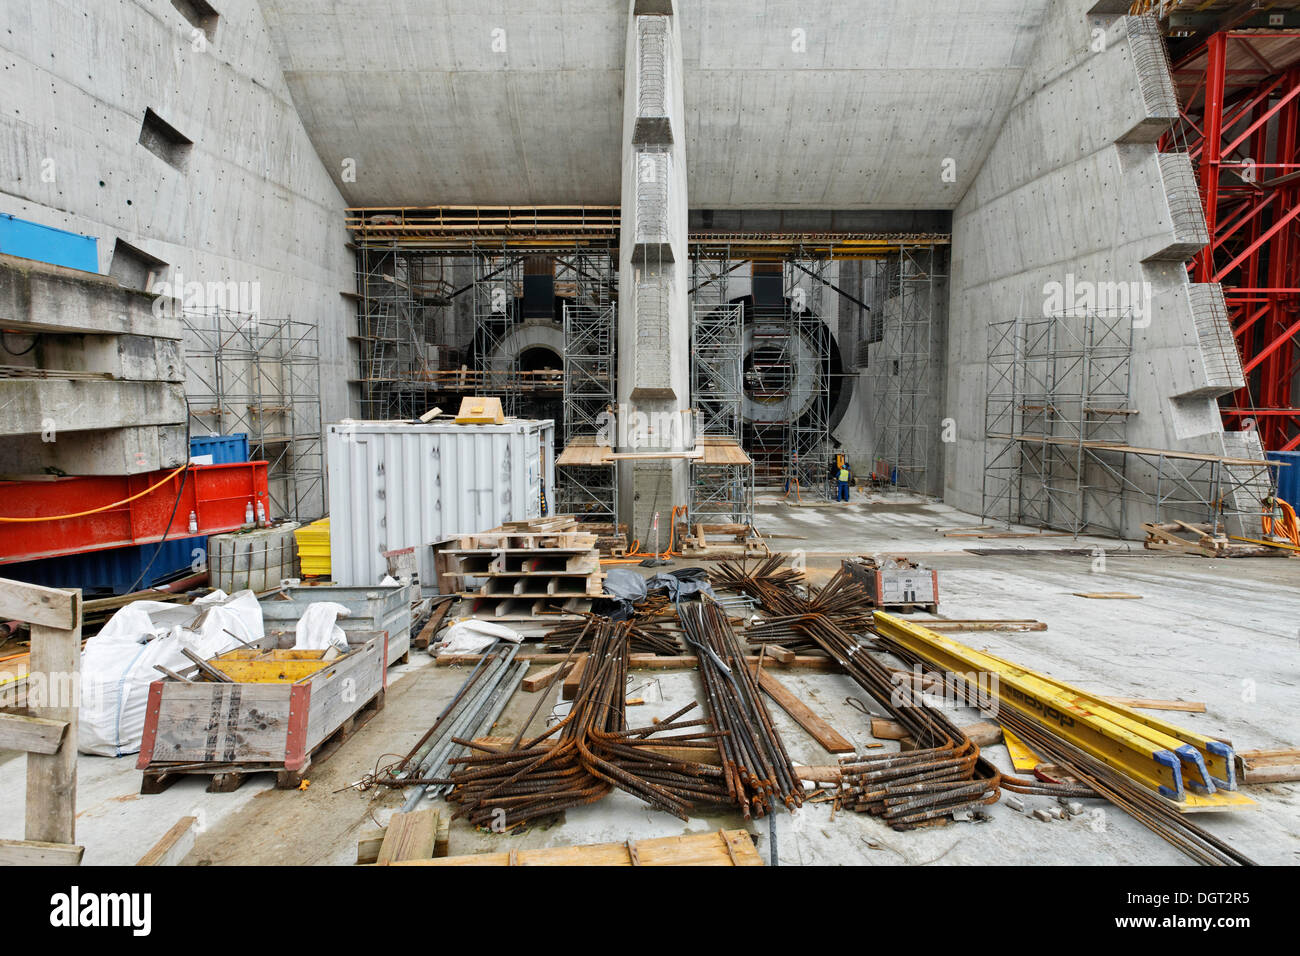 Construction site of the new hydropower plant in Rheinfelden, headwater inlet platform, chamber 1 and 2, Rheinfelden - Ost - Stock Image